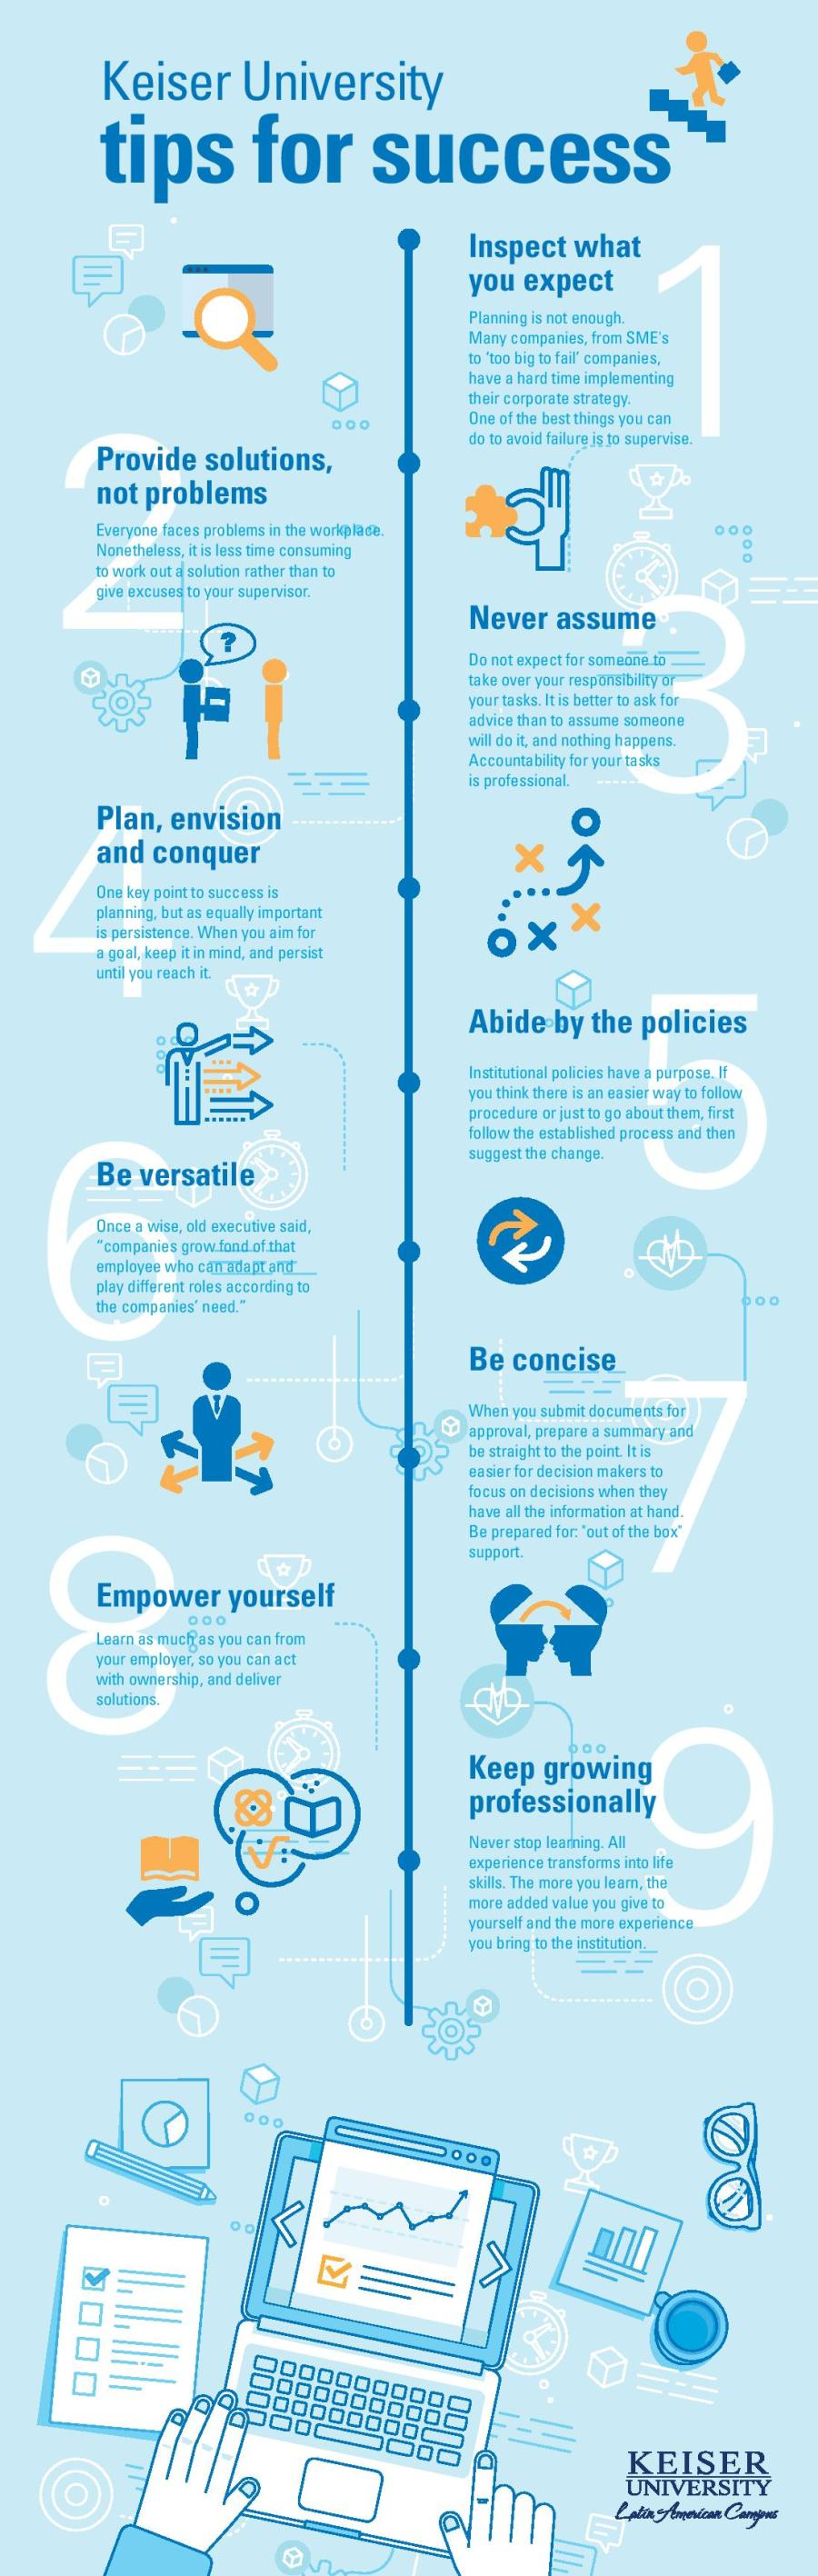 ku-tips-for-success-infographic-page-001